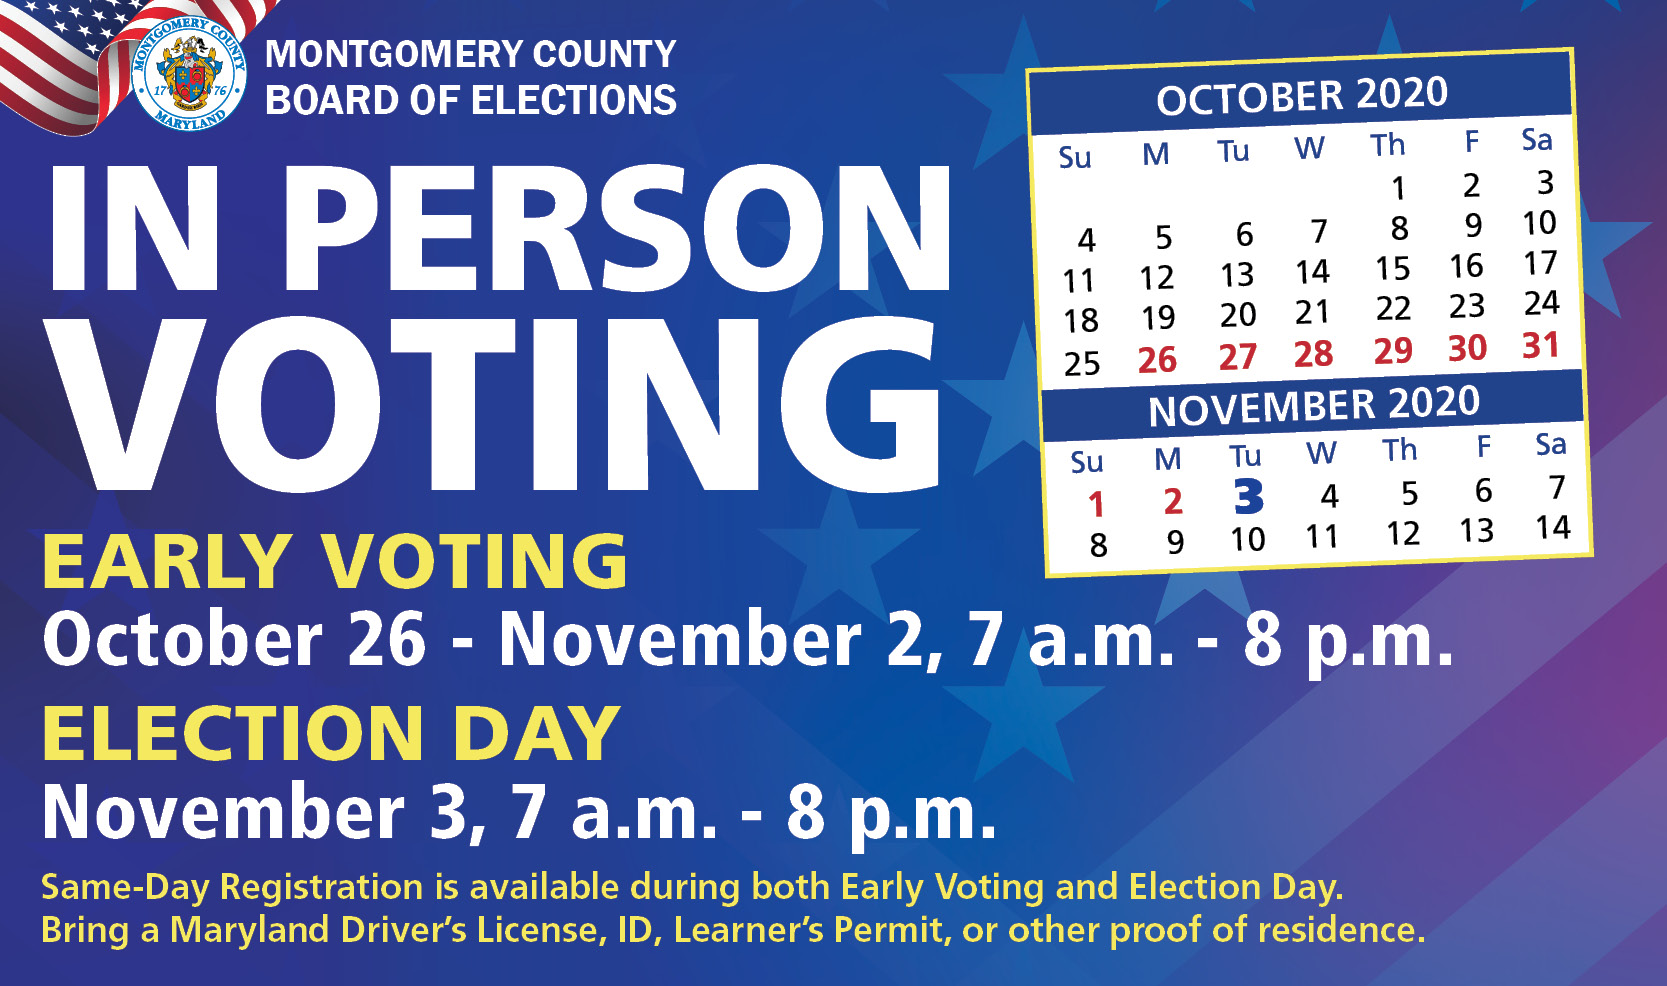 Early voting for the Presidential General Election is set for Oct. 26 to Nov. 2 and Election Day is Tuesday, Nov. 3.